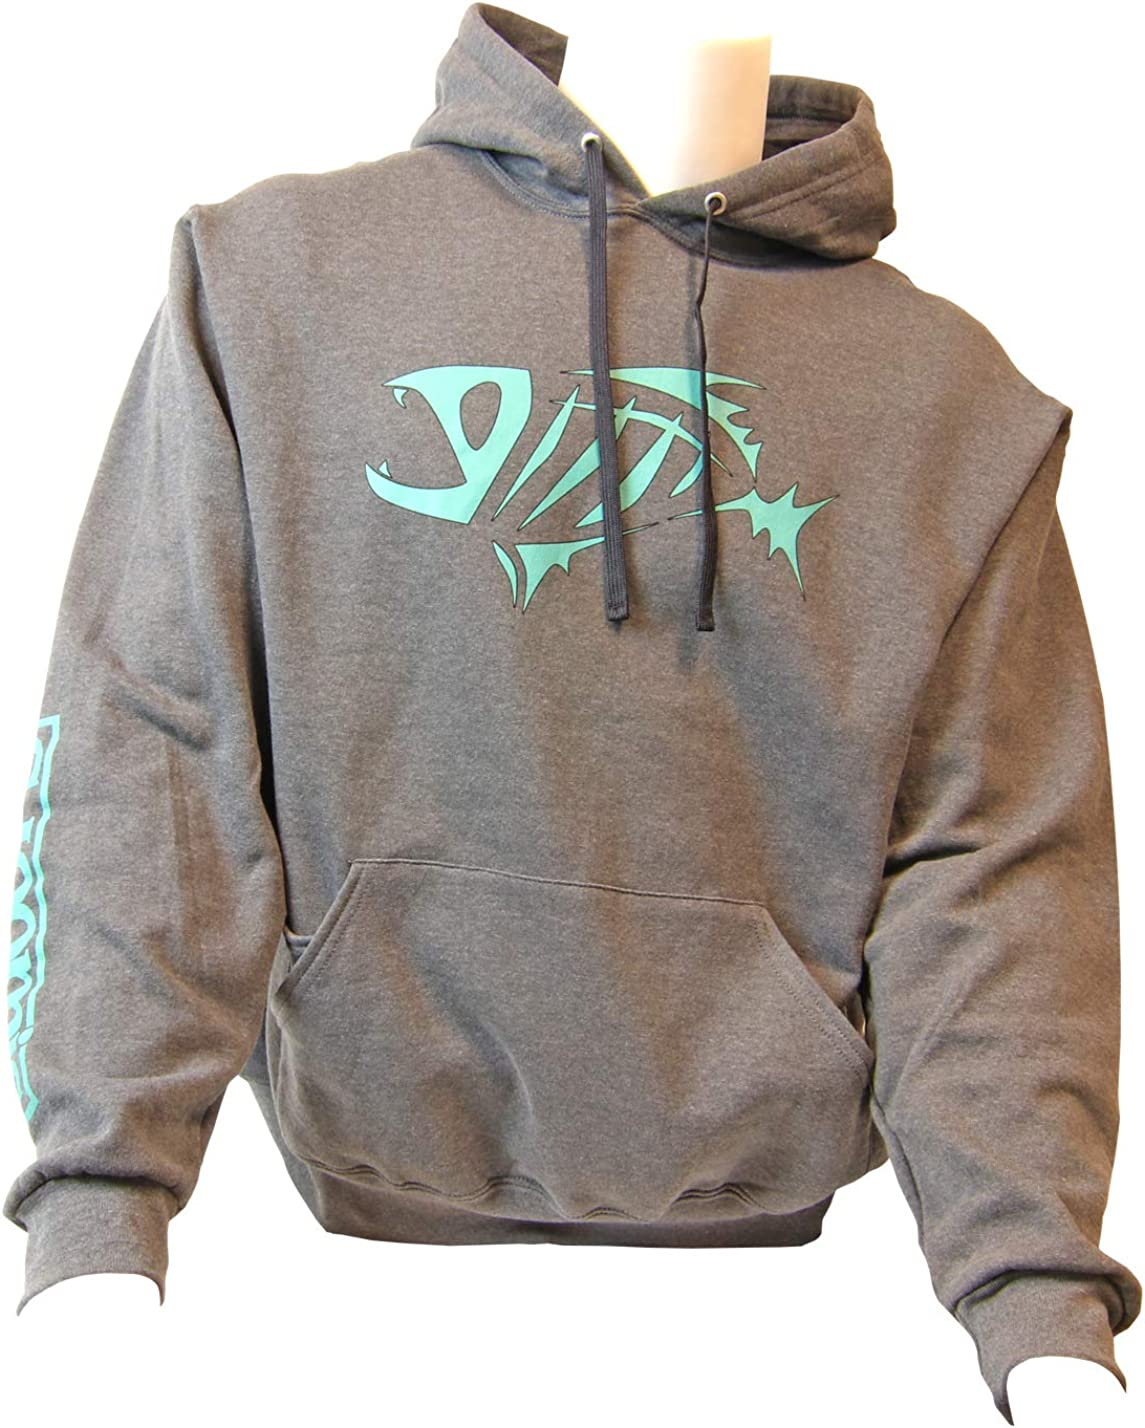 G. Loomis Gloomis Lifestyle Hoodie excellence Gear Free shipping on posting reviews Men's Fishing Outerwear